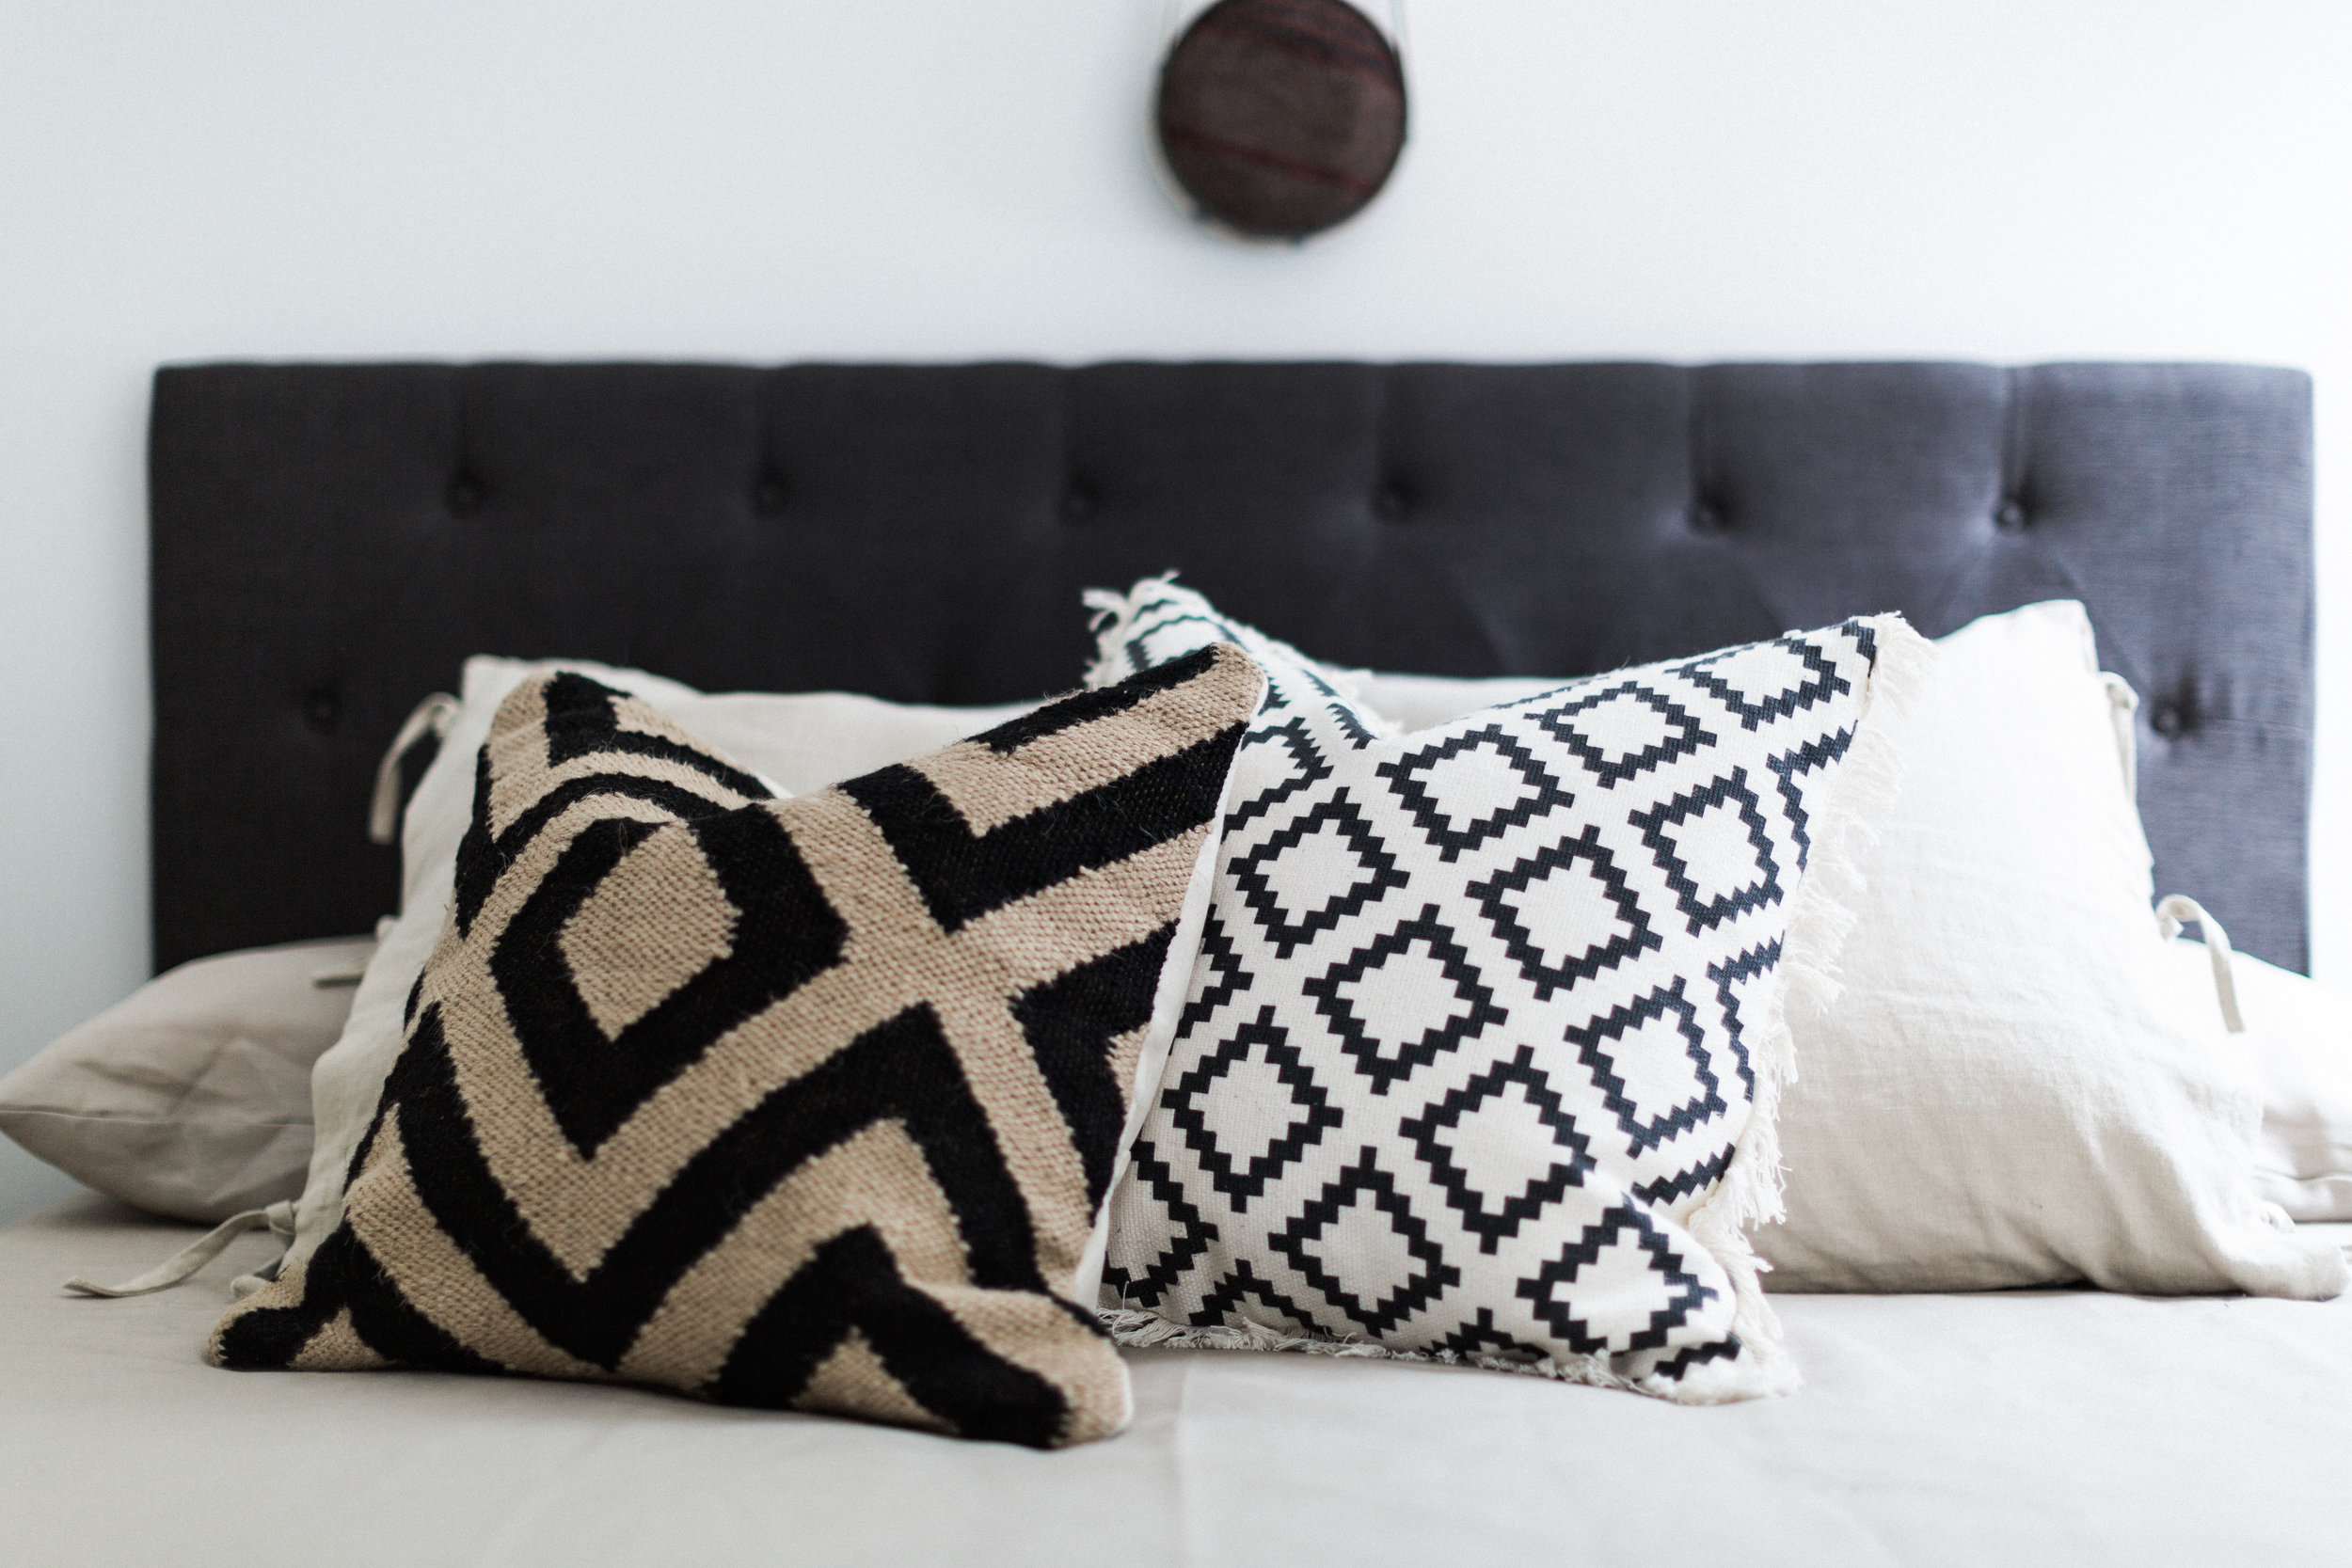 Thank you, H&M Home, for always having amazing pillows. Industry tip: When you see something you love in home decor, snatch it up quick, because H&M sells out of popular items fast. And when they're gone, they're gone.